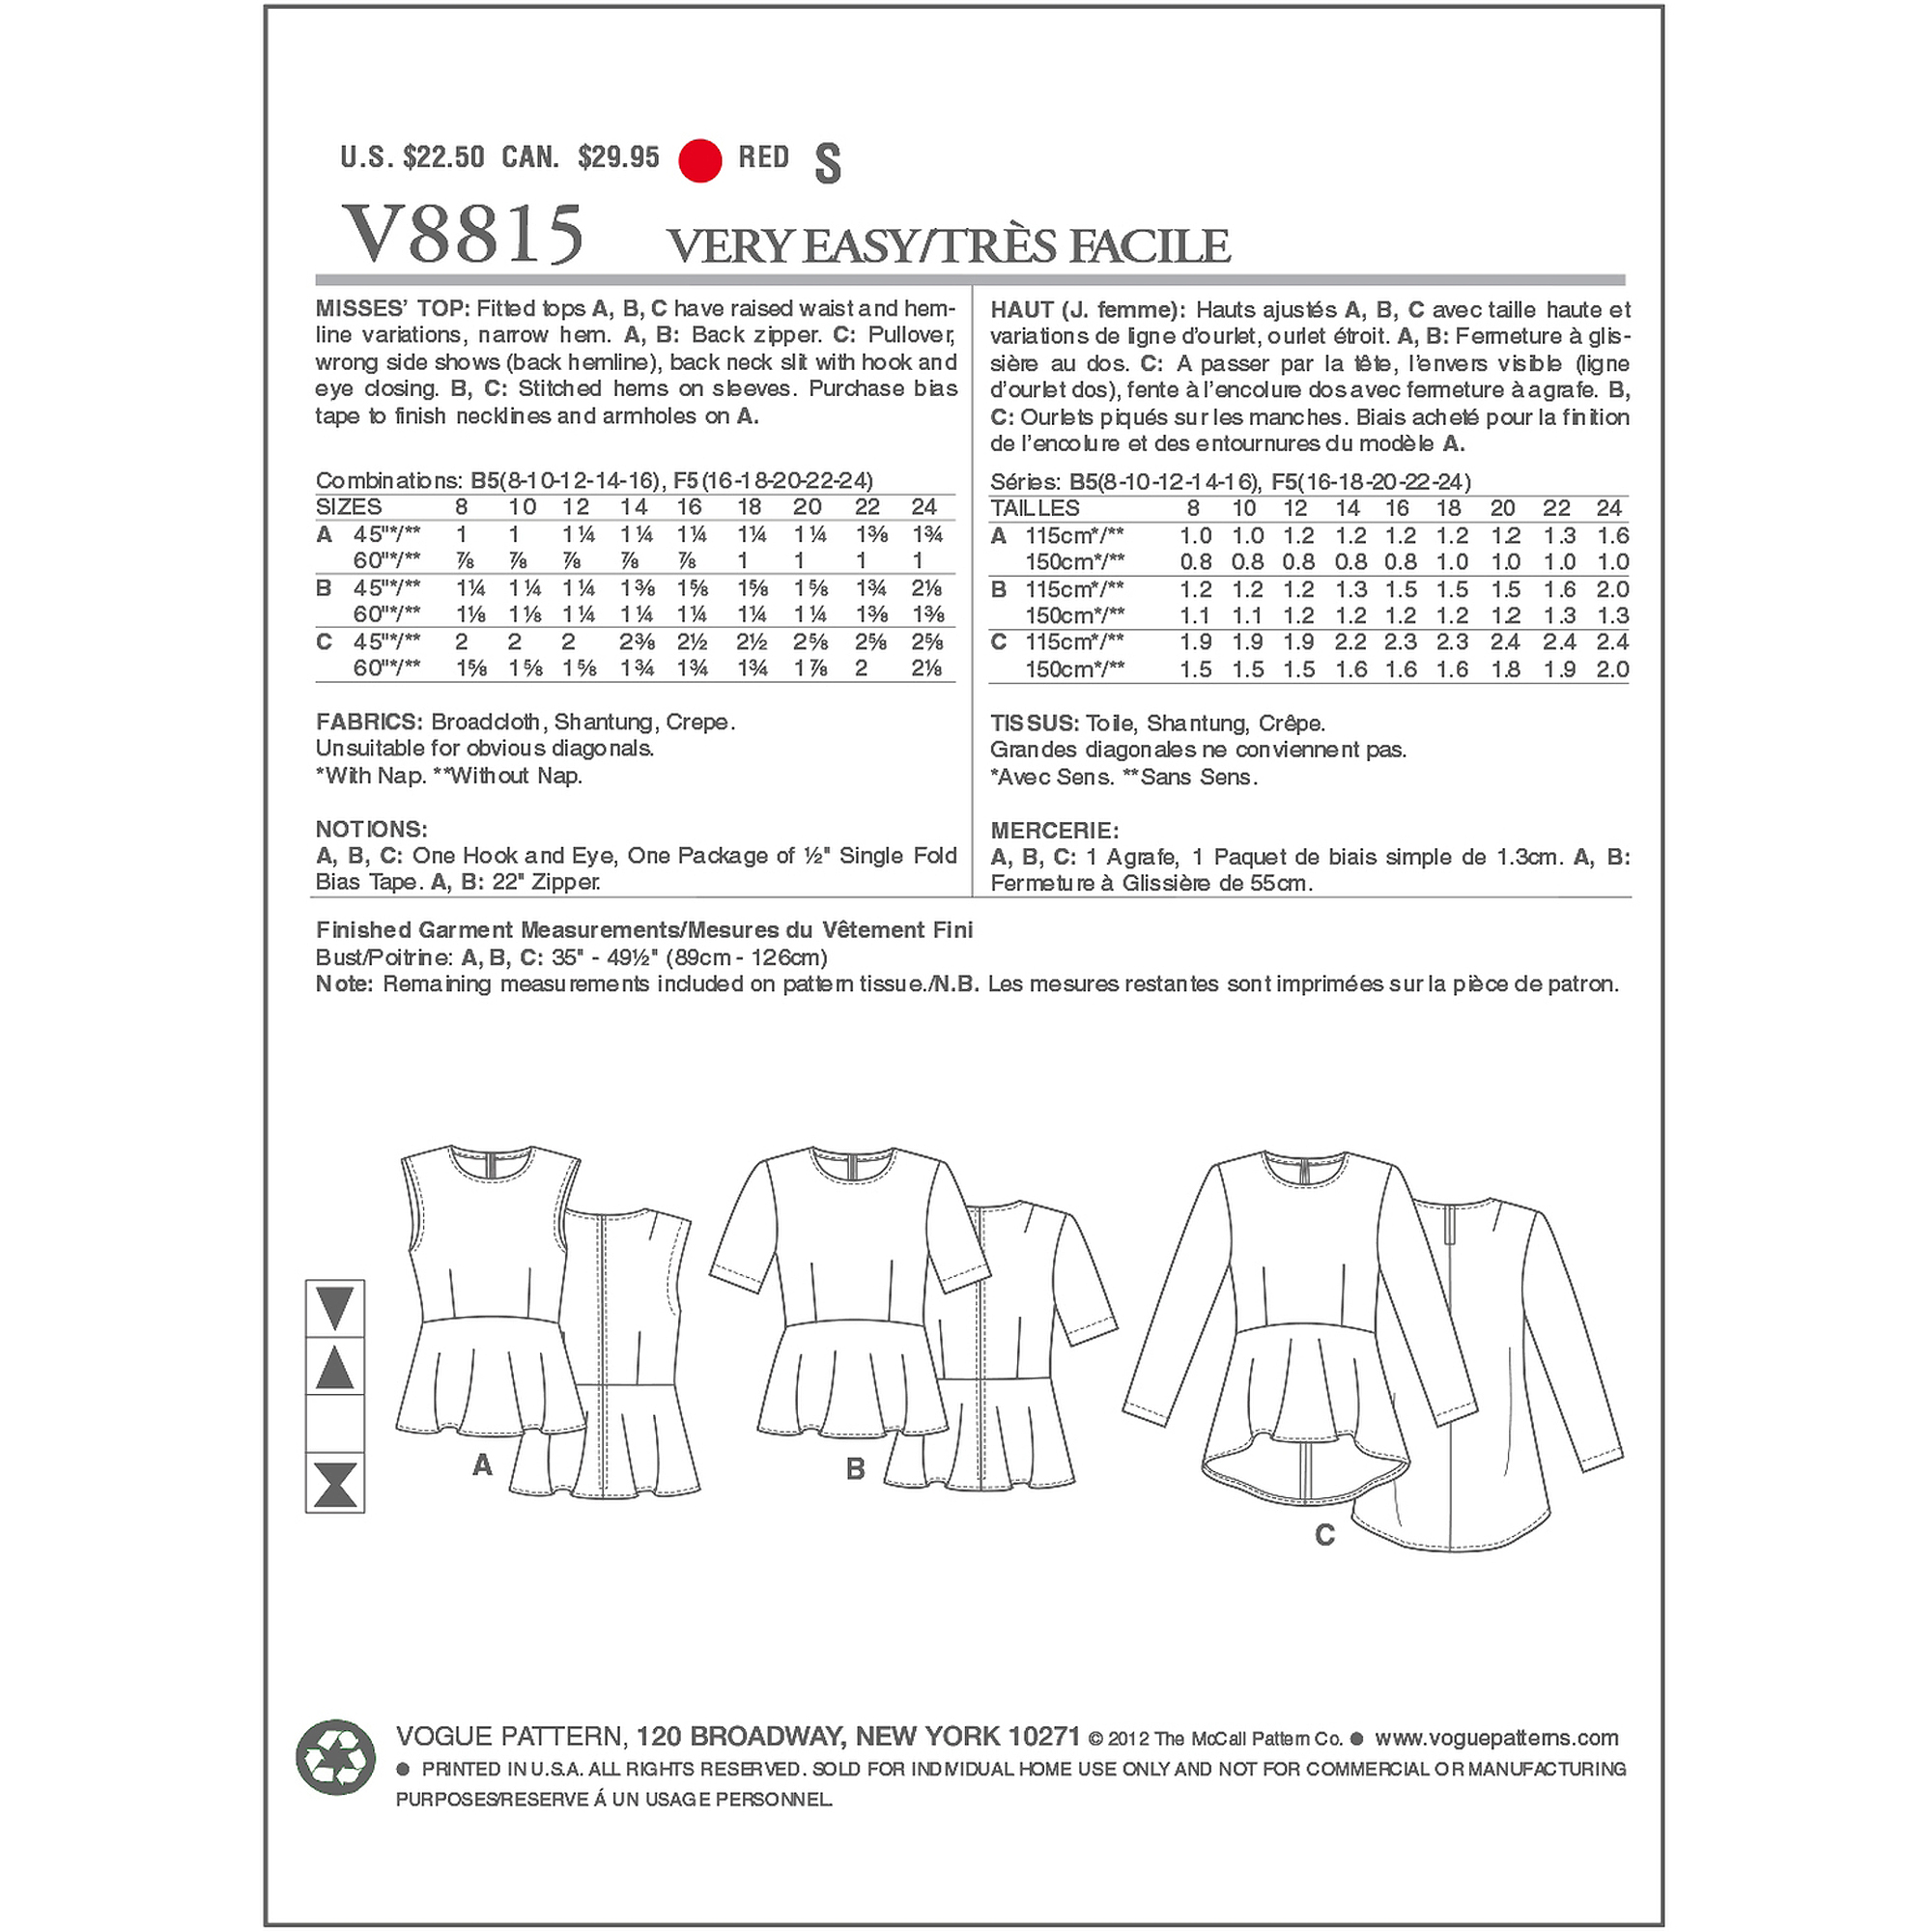 Vogue Pattern Misses' Dress, E5 (14, 16, 18, 20, 22)